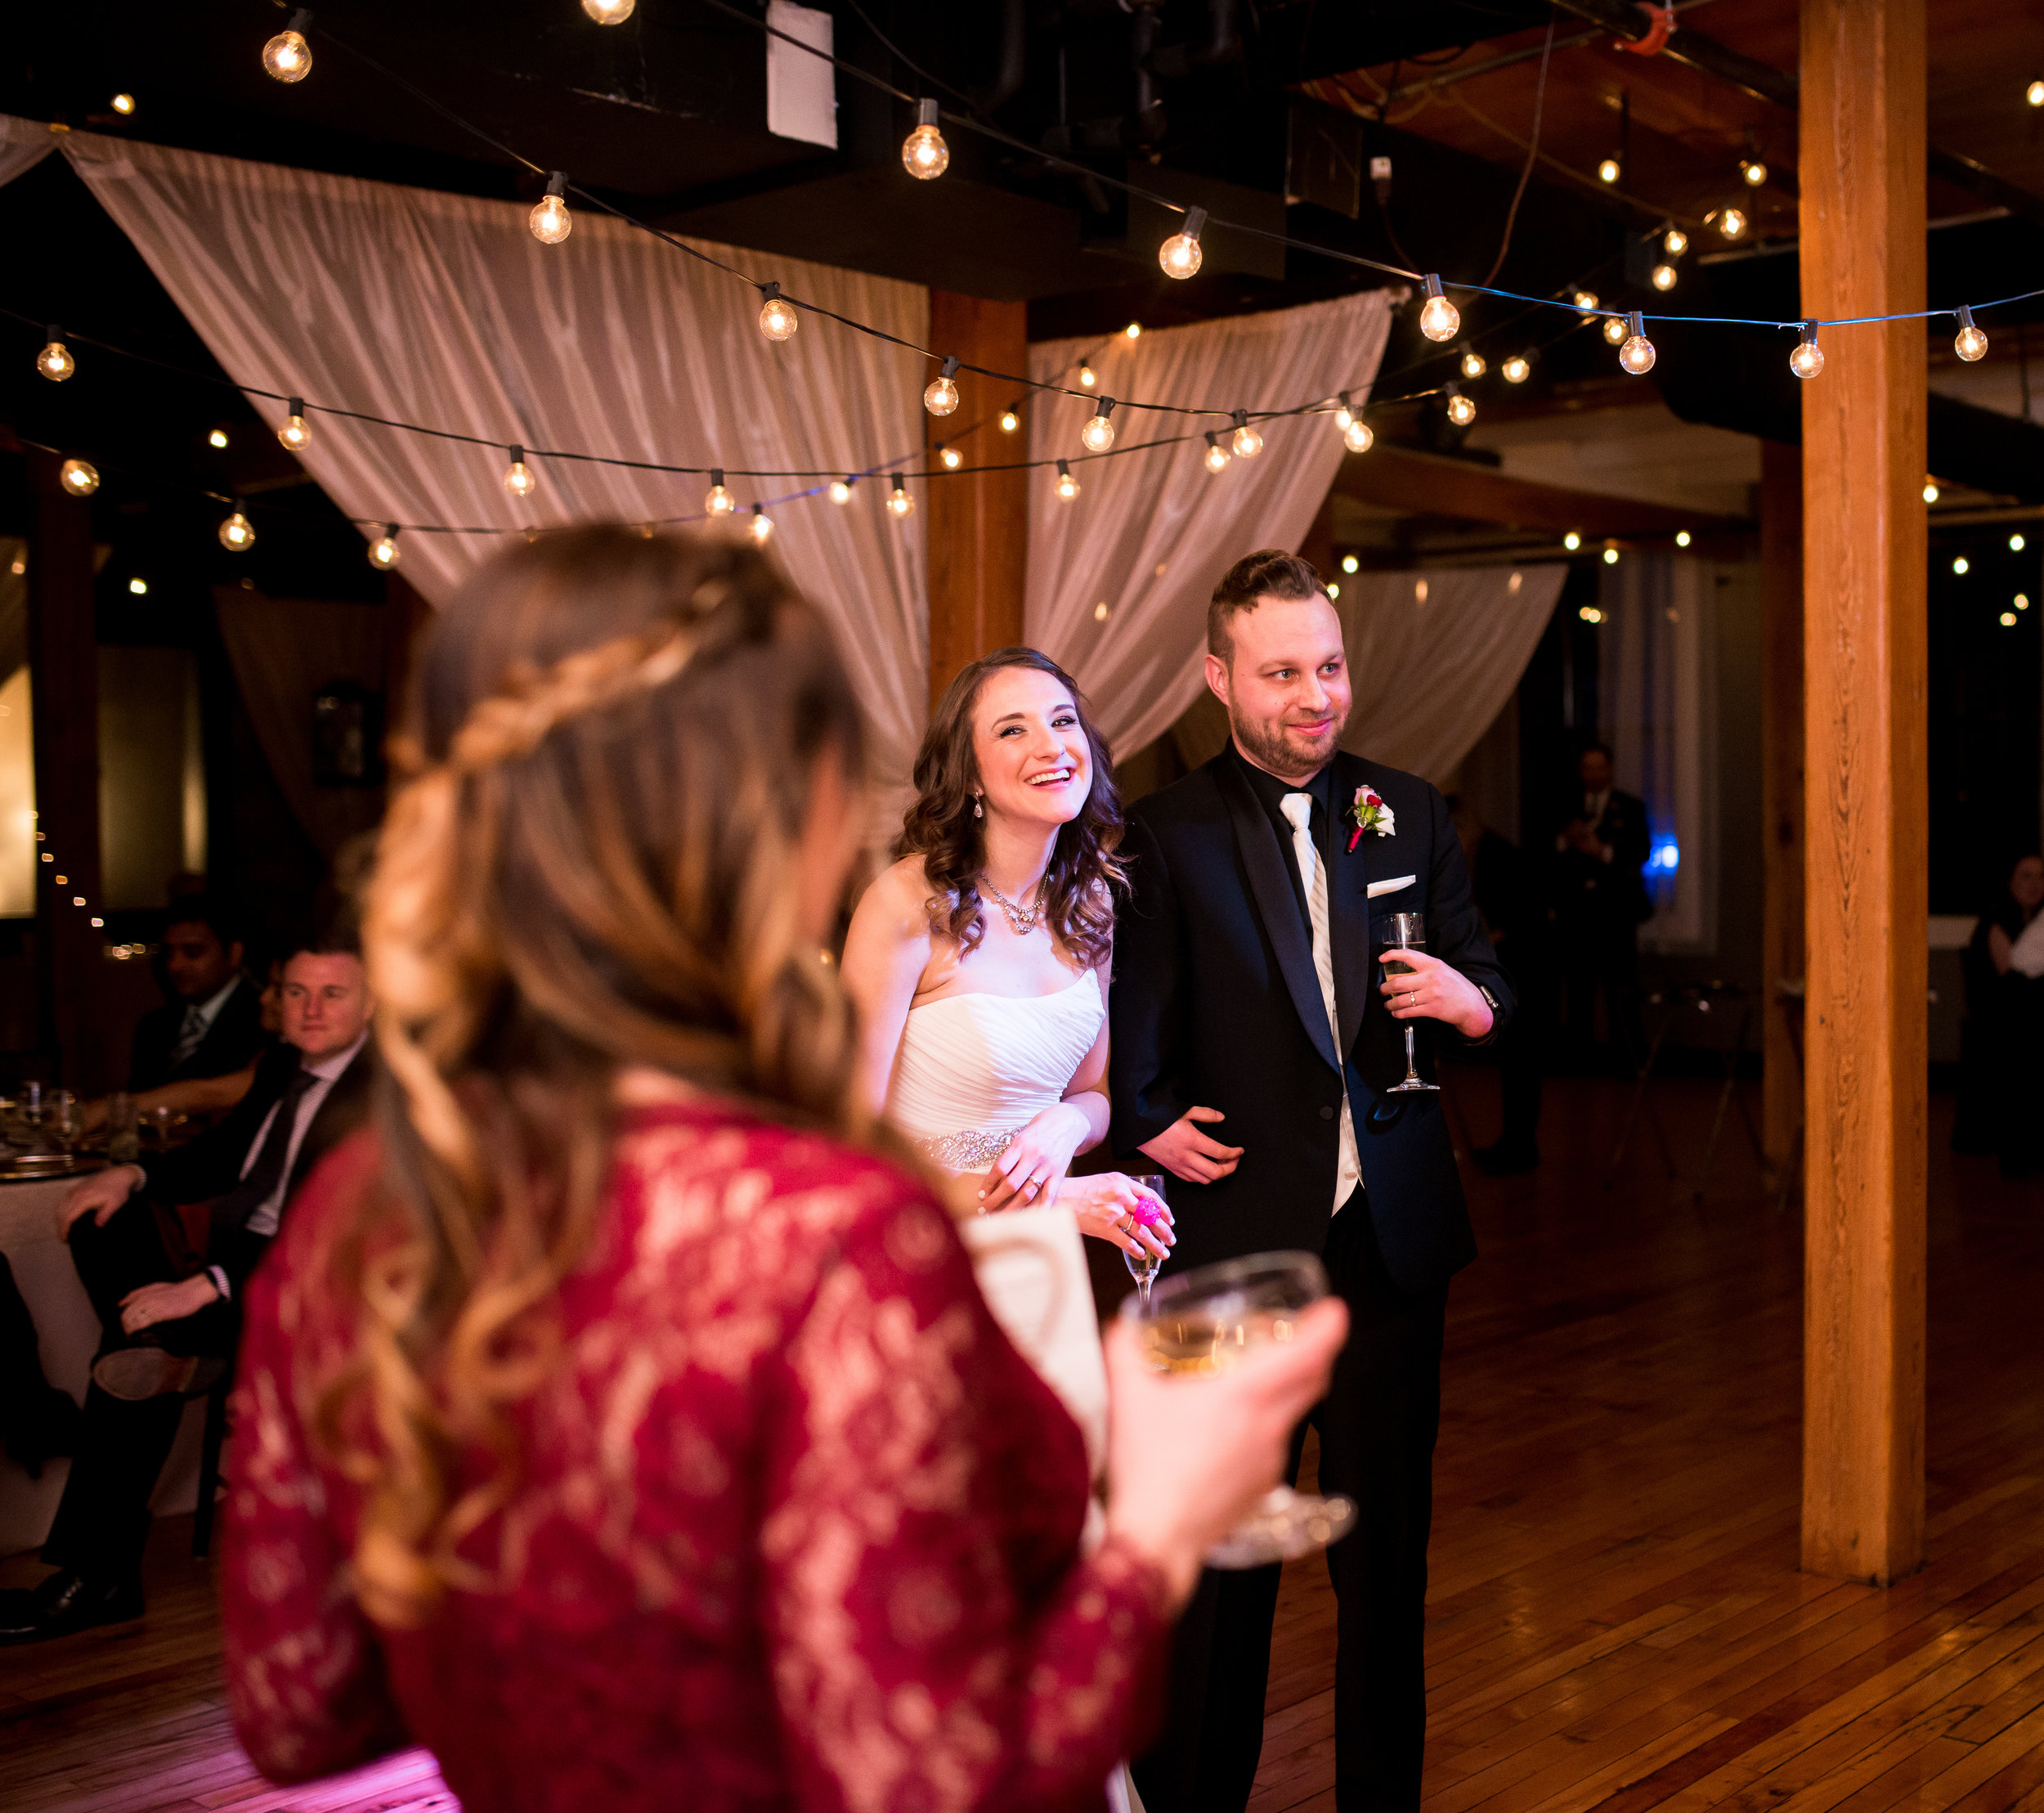 LUV LENS_WEDDING_EMILY AND ANDREW-366.jpg